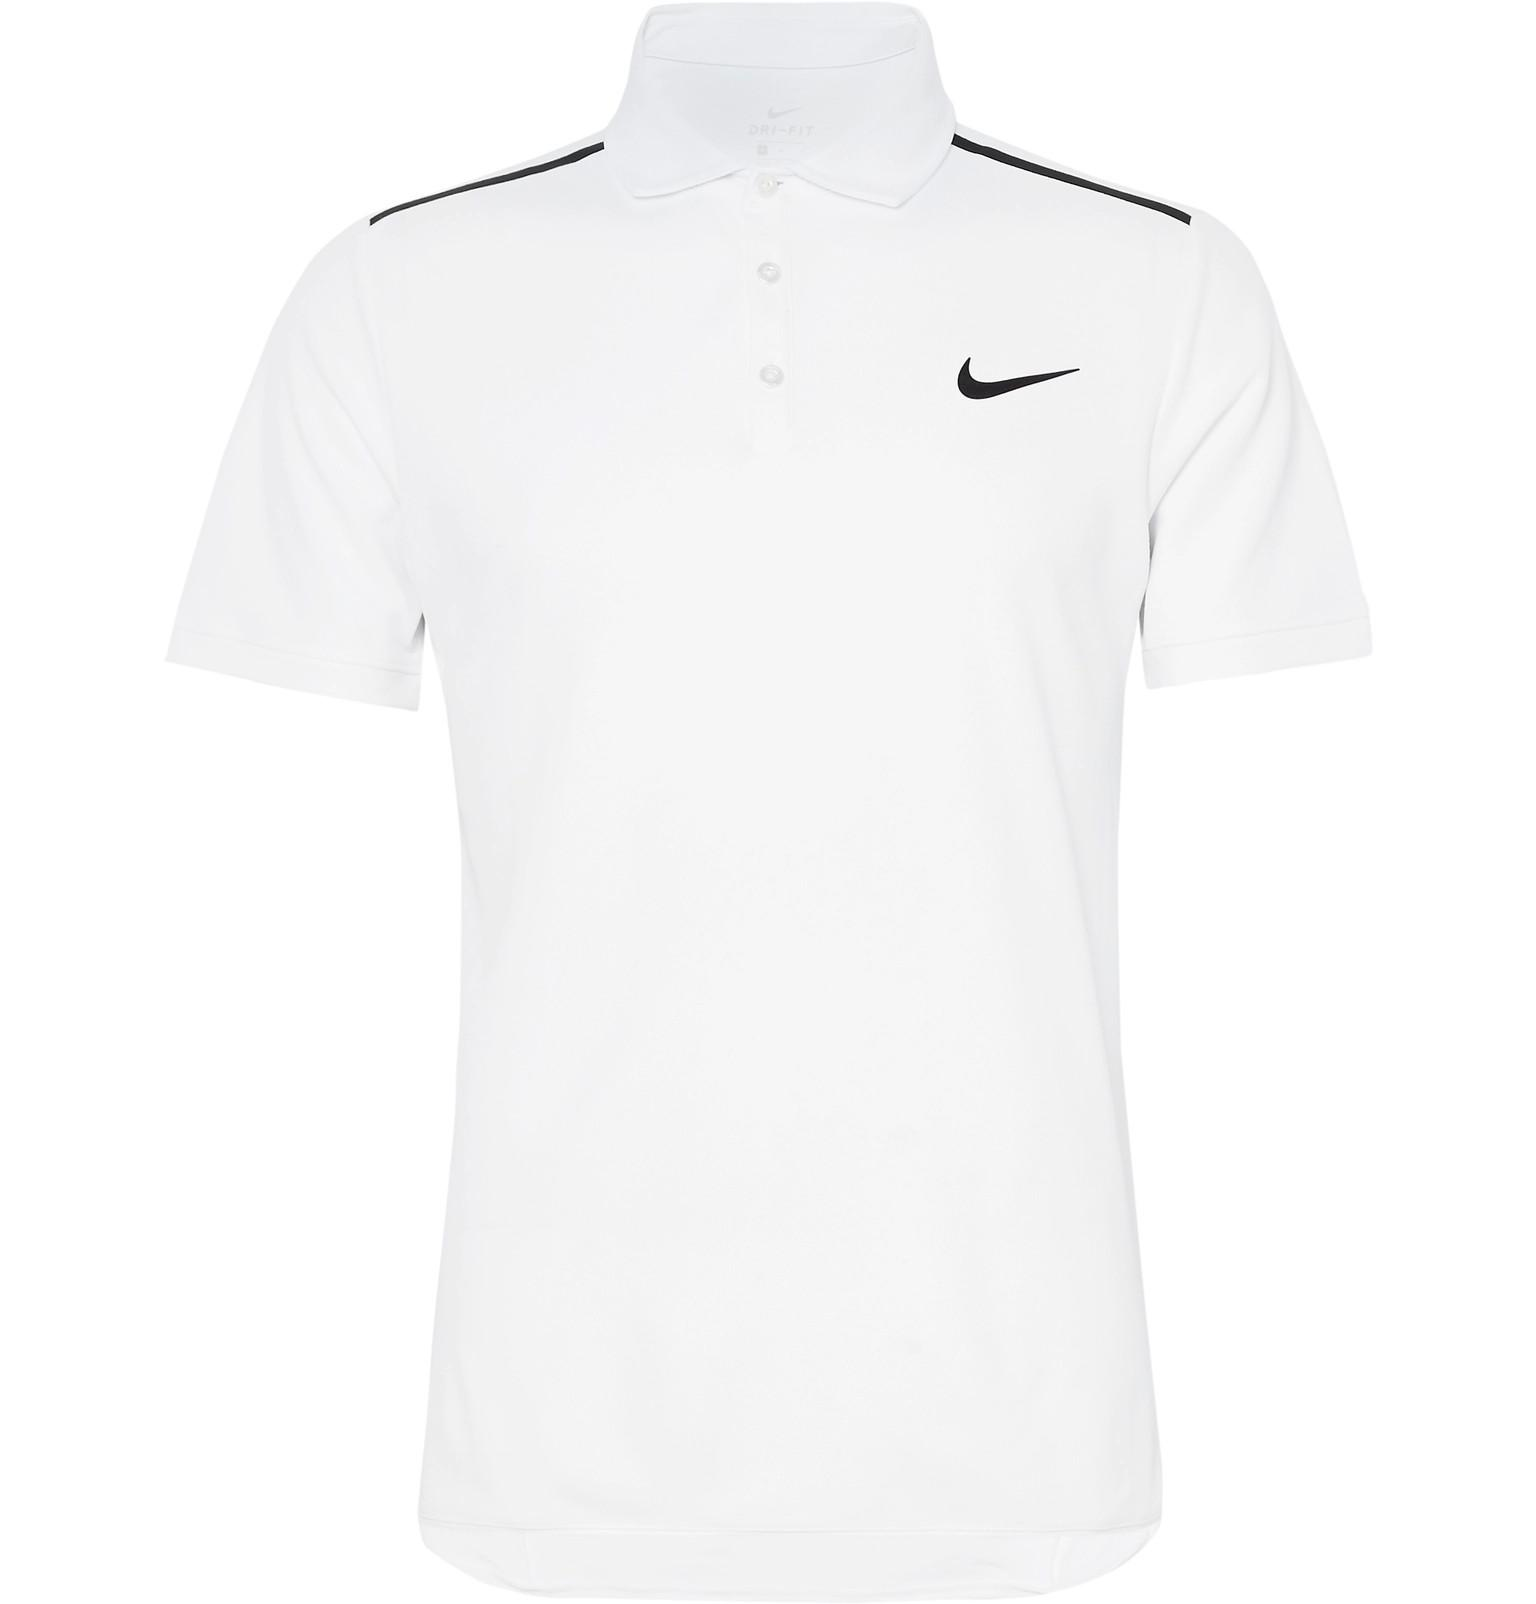 3584c09c Nike Nikecourt Dry Advantage Dri-fit Piqué Tennis Polo Shirt in ...